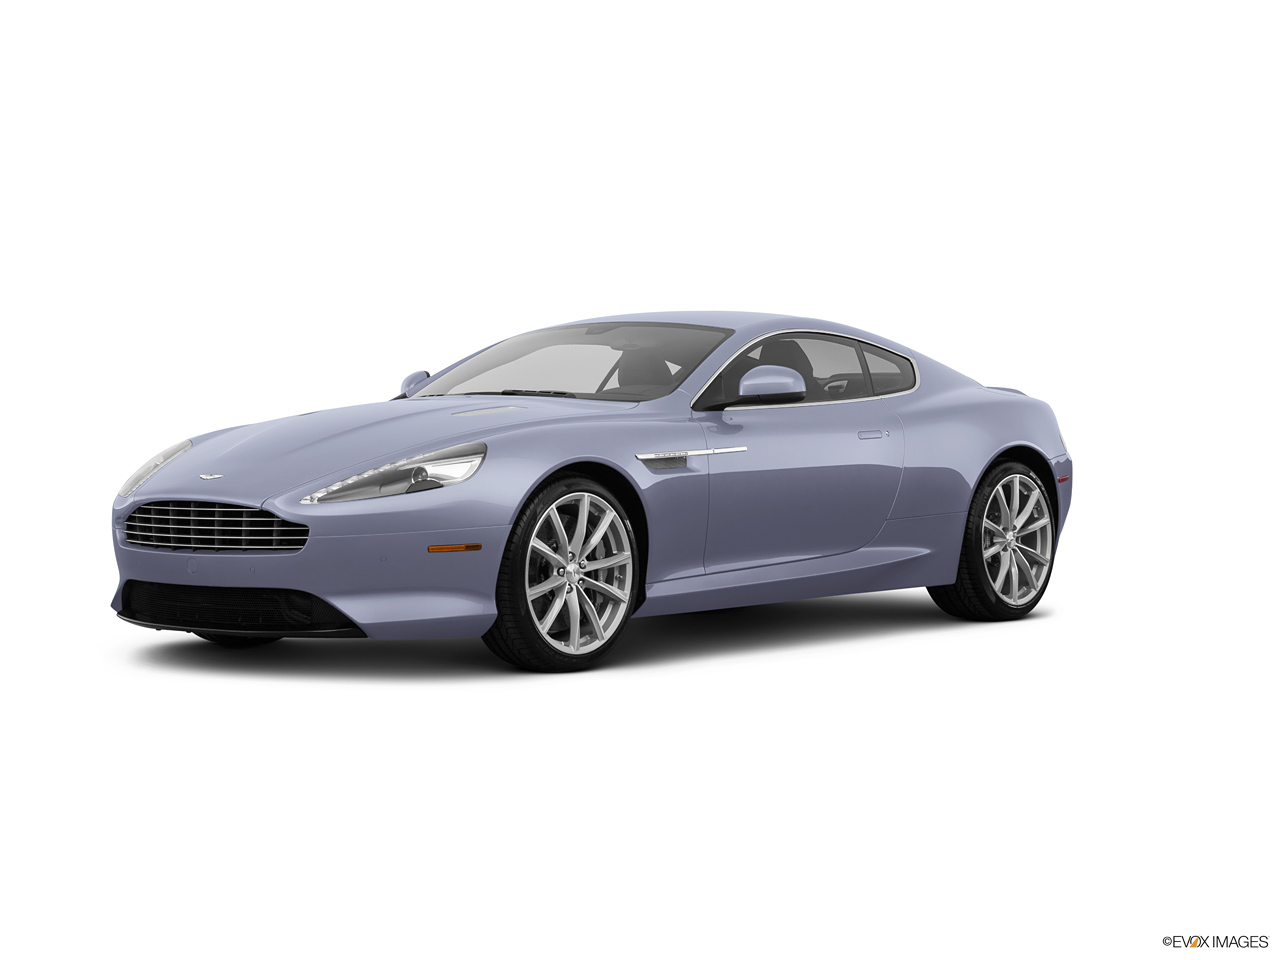 aston martin db9 2016 v12 carbon black in qatar new car prices specs reviews photos. Black Bedroom Furniture Sets. Home Design Ideas